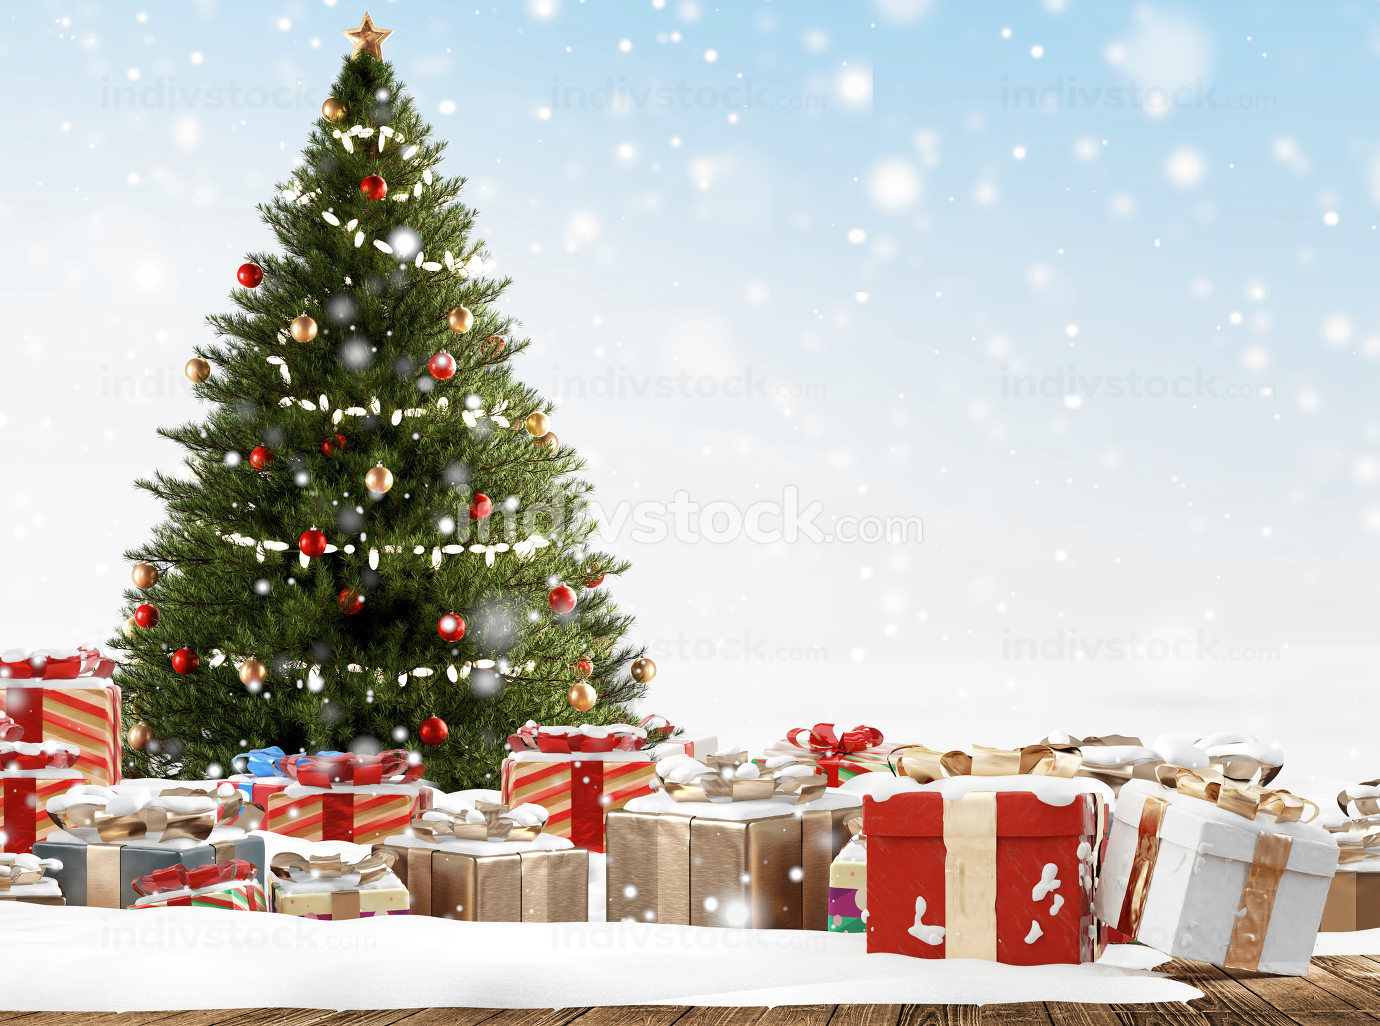 christmas gifts and tree background. white snow. christmas 3d-illustration